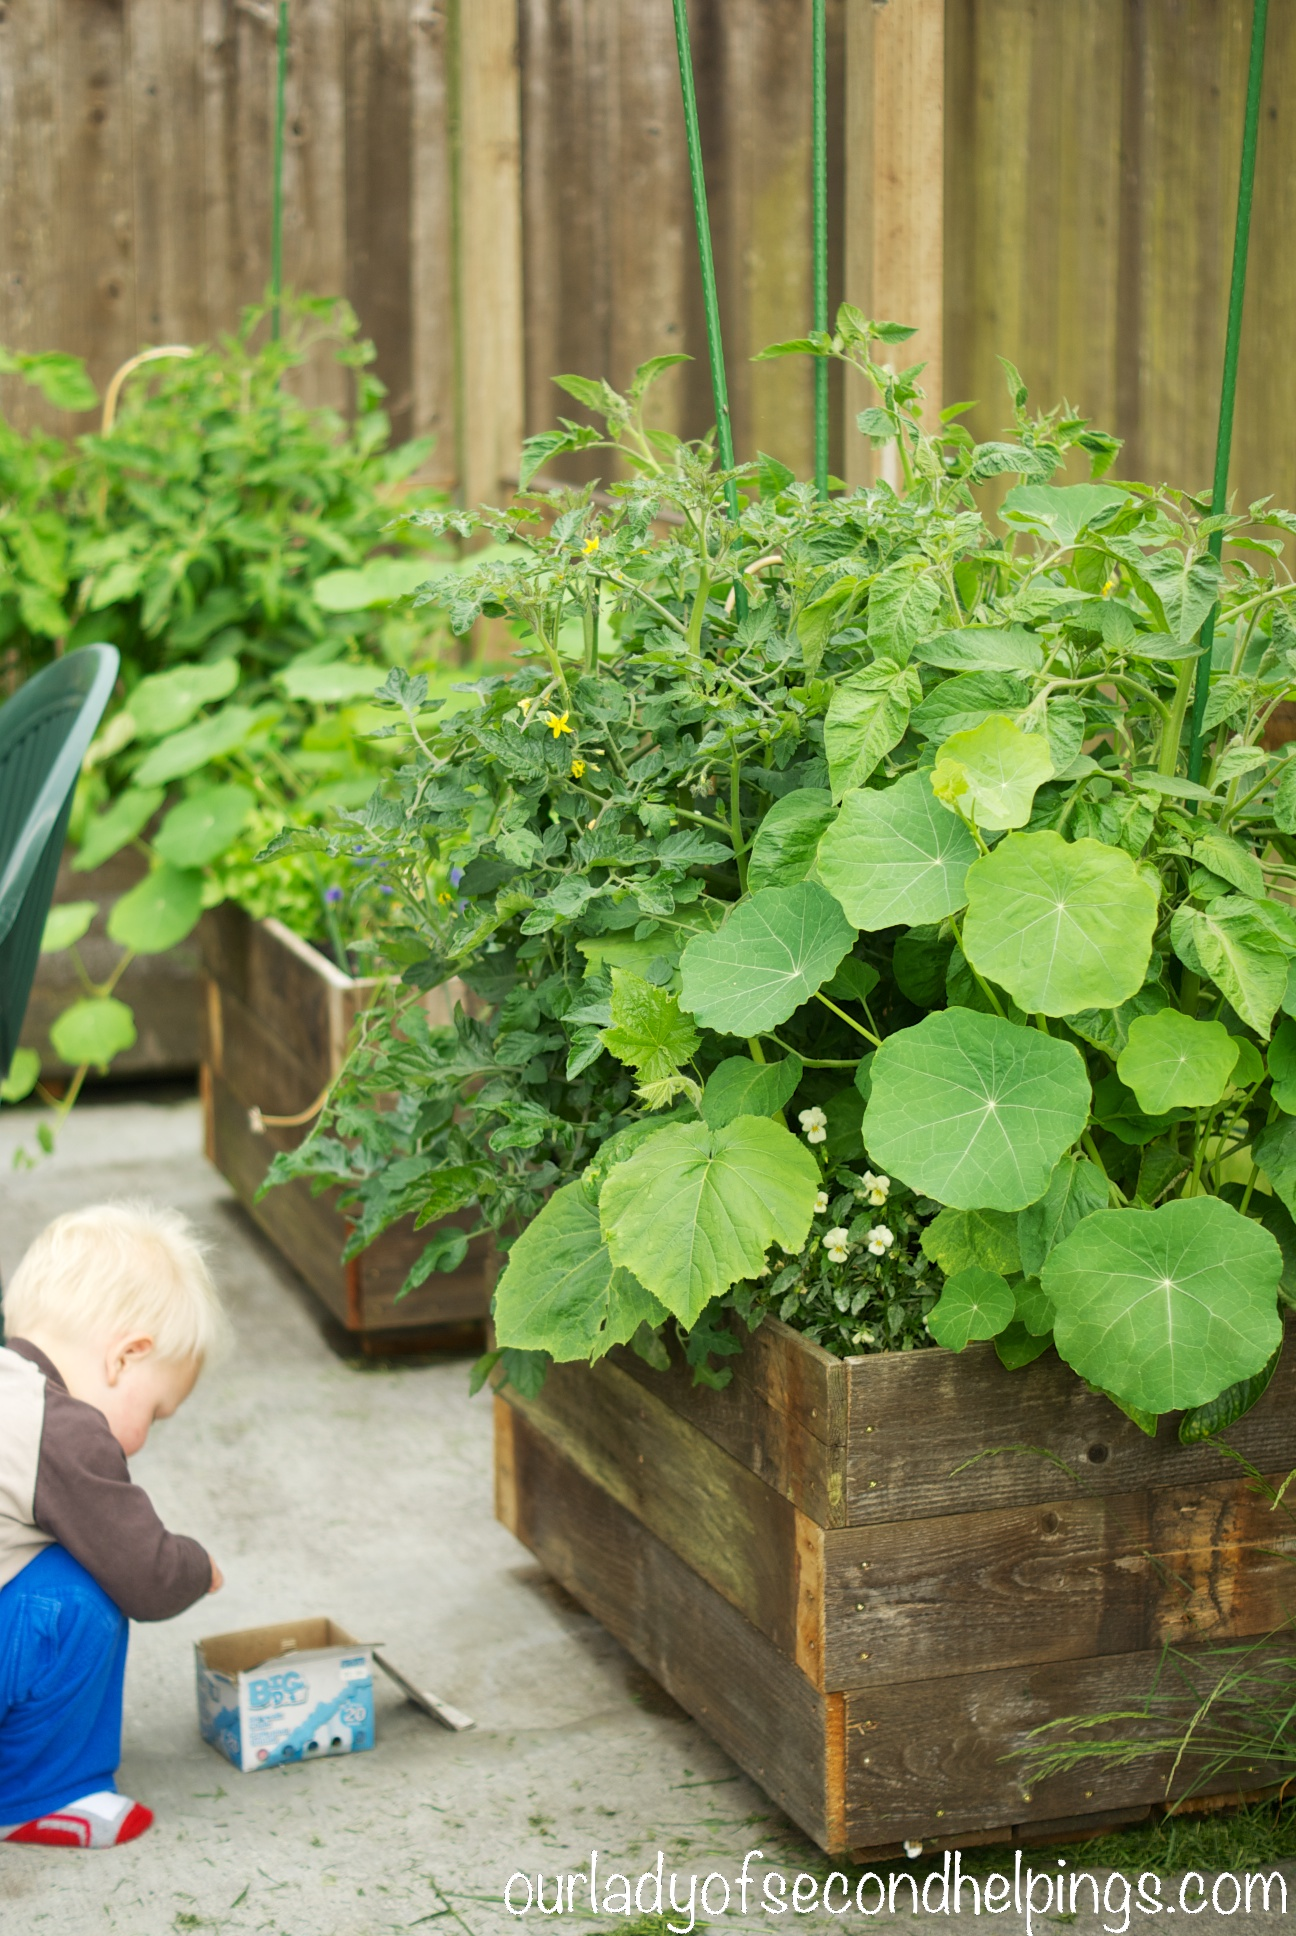 Child crouched infront of vegetable garden